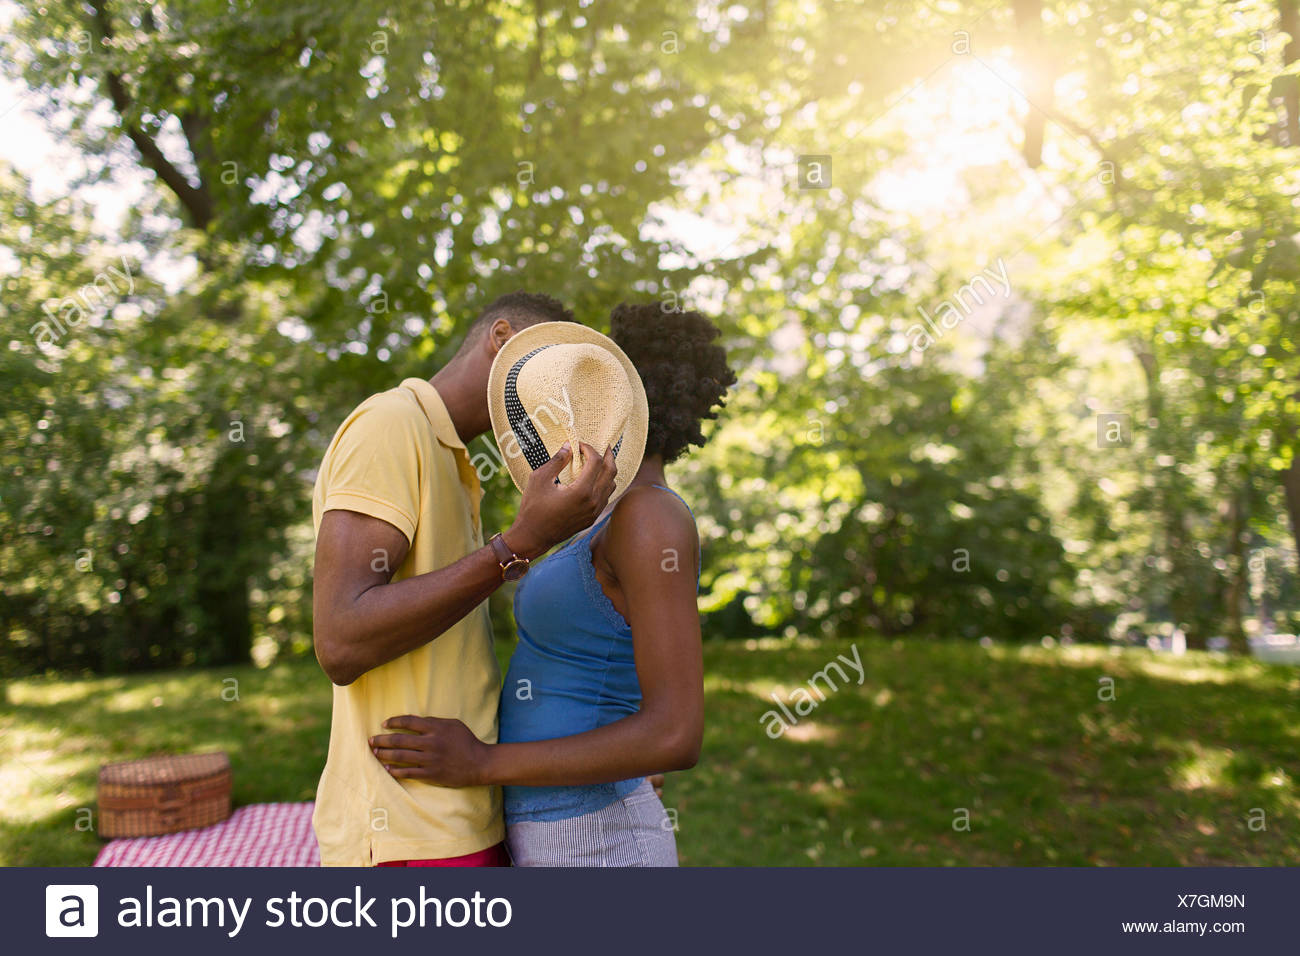 Young couple in park holding up hat to cover faces - Stock Image